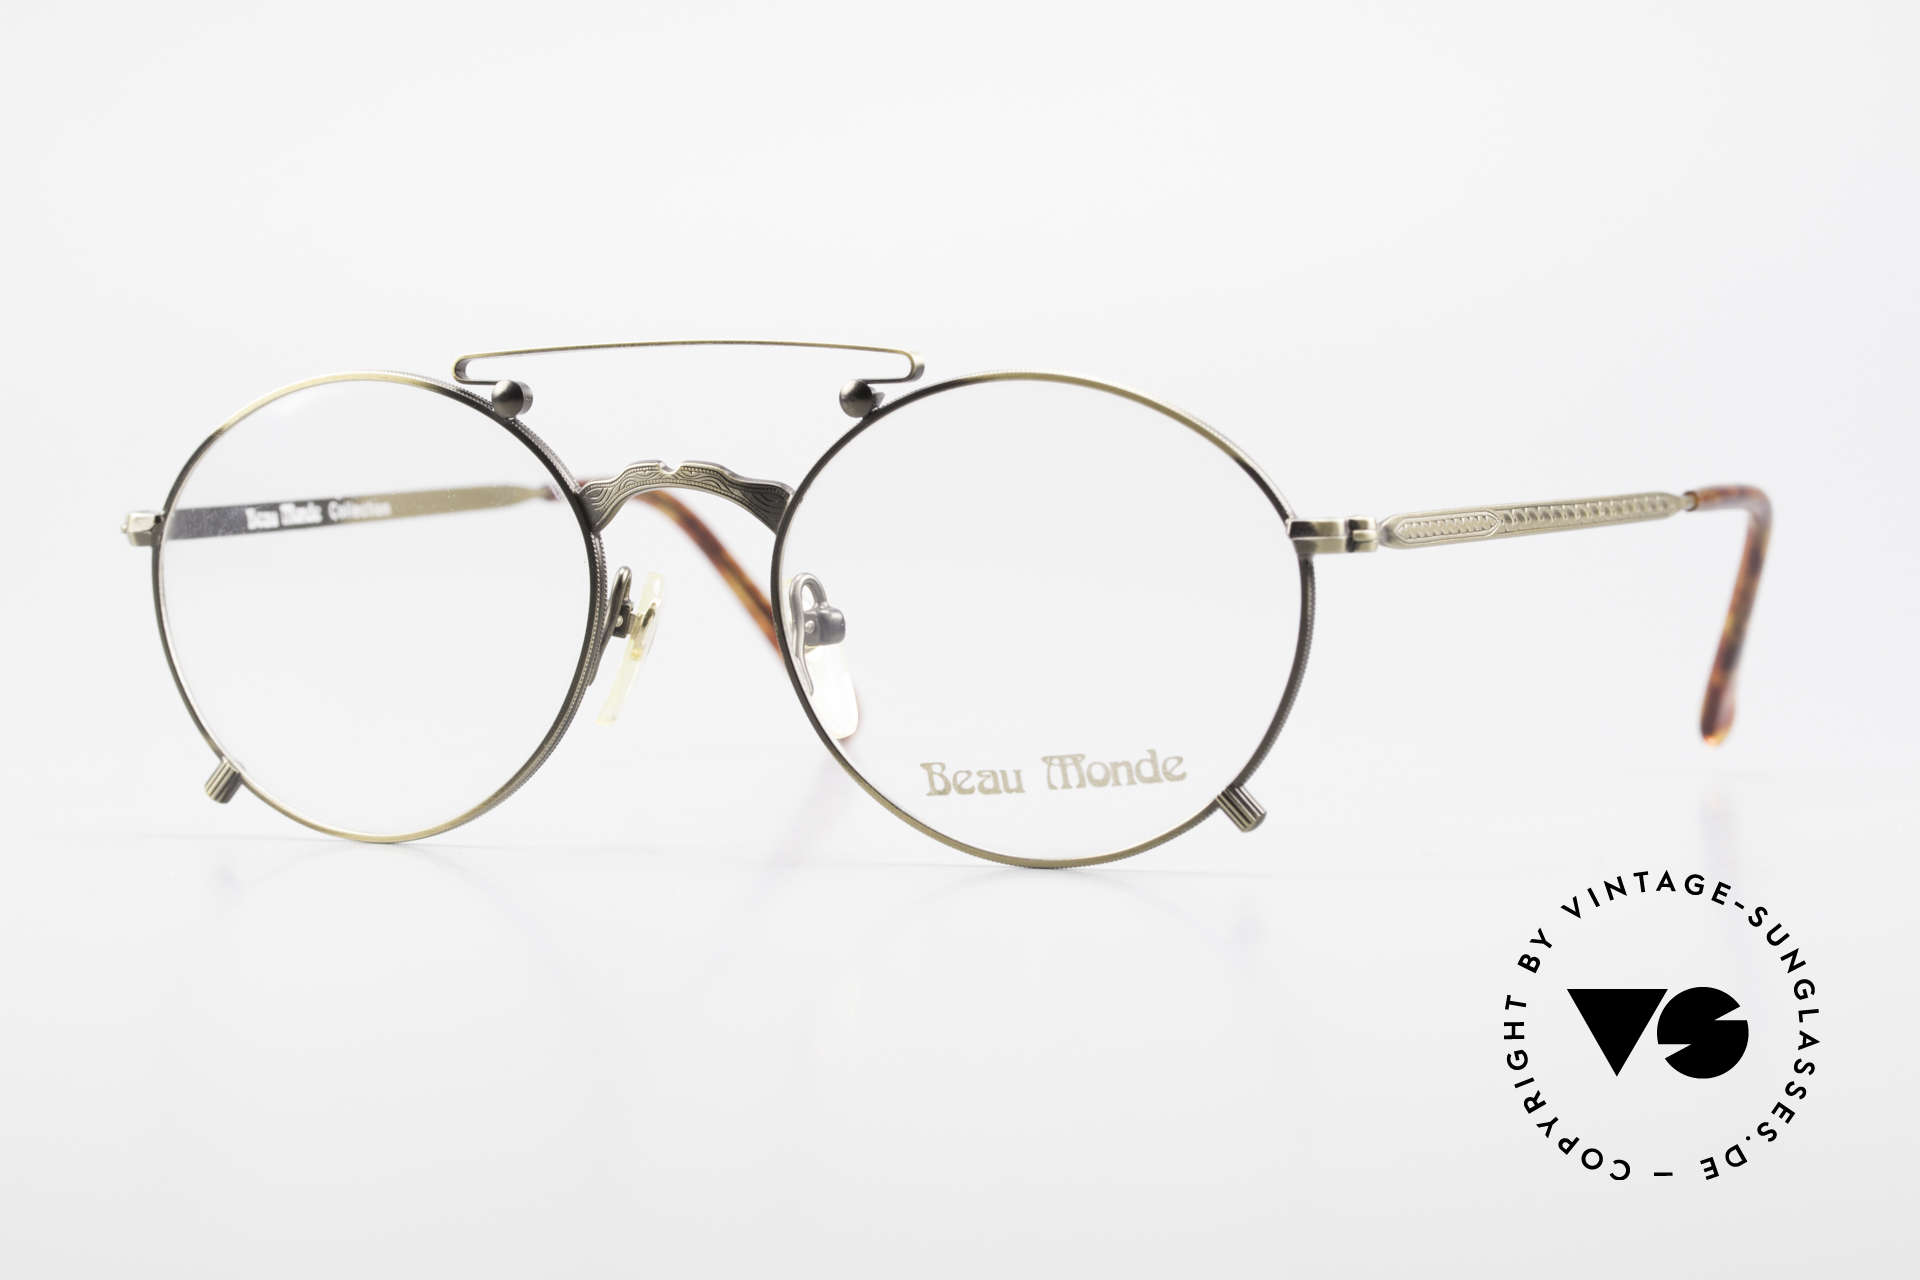 Beau Monde Knightsbridge Old Vintage Frame 90's Insider, interesting old vintage glasses of the late 80s/early 90s, Made for Men and Women